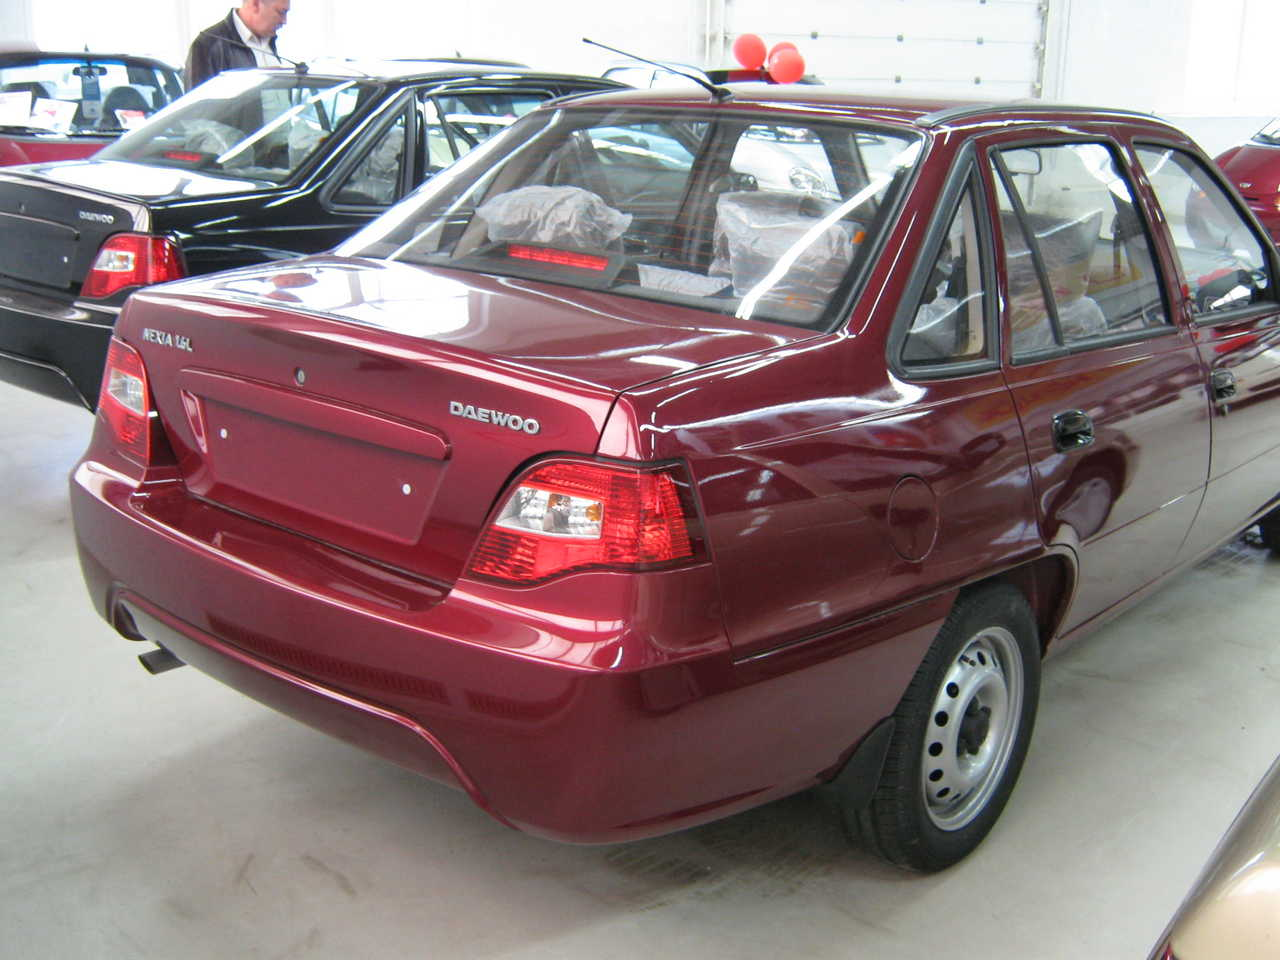 ... daewoo lanos and compact nubira in 1997 used daewoo nexia 2010 daewoo